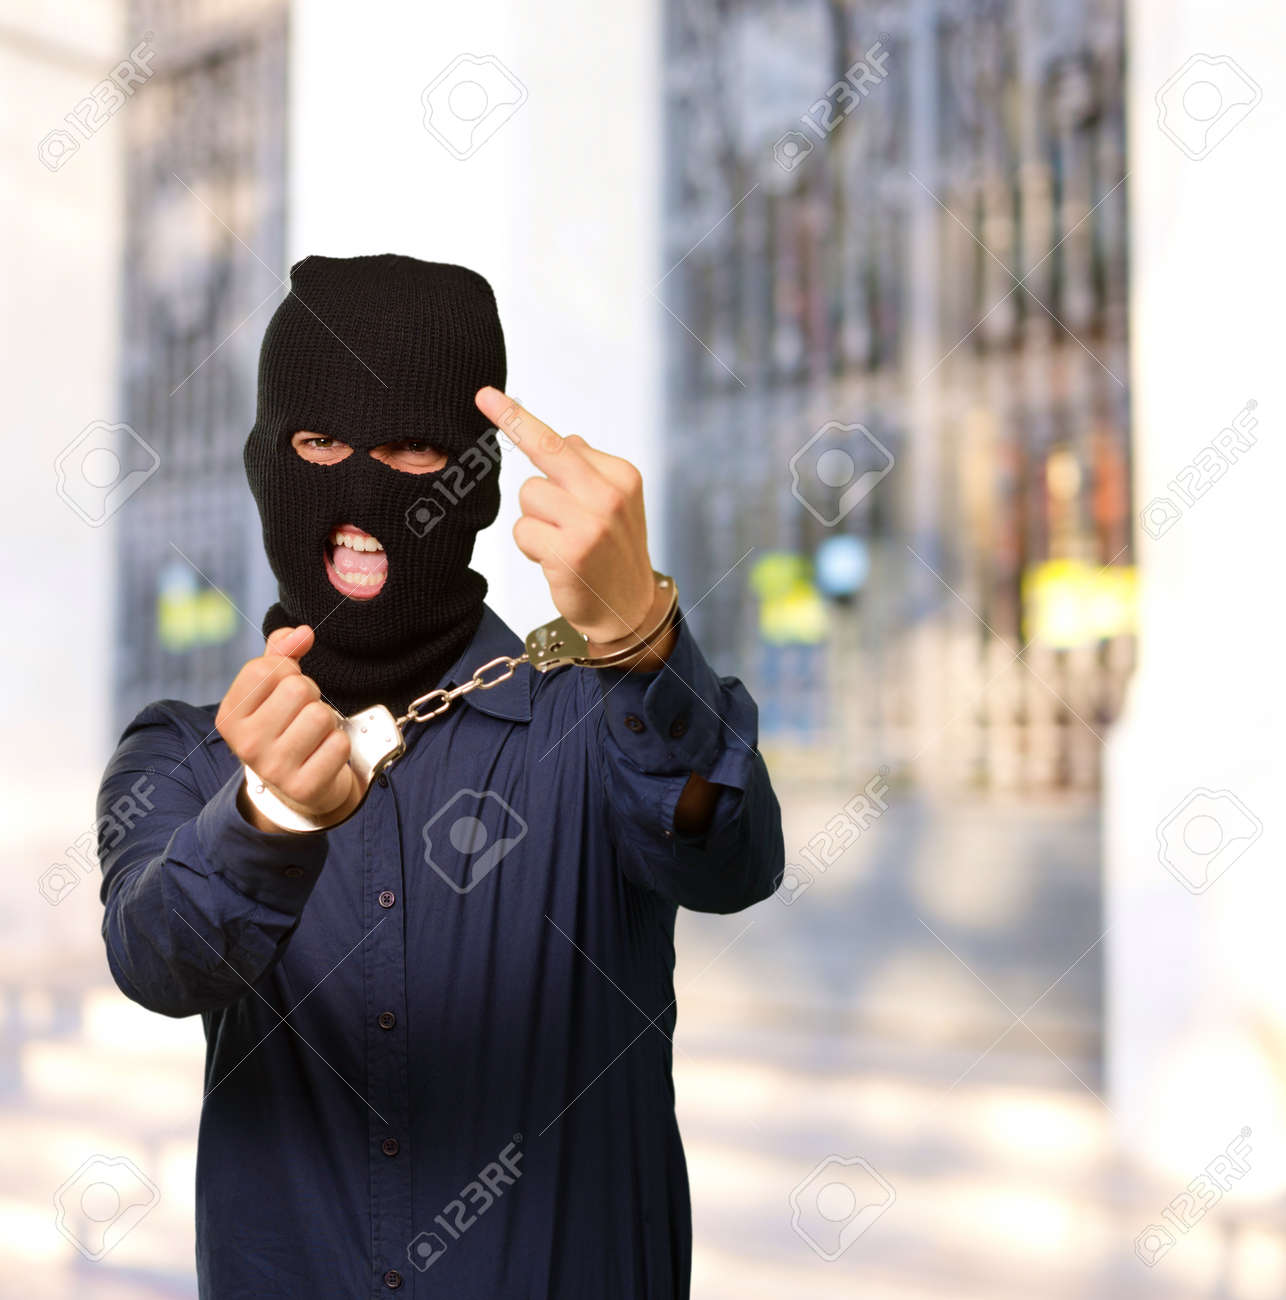 angry criminal man locked in handcuffs, outdoor Stock Photo - 14760881